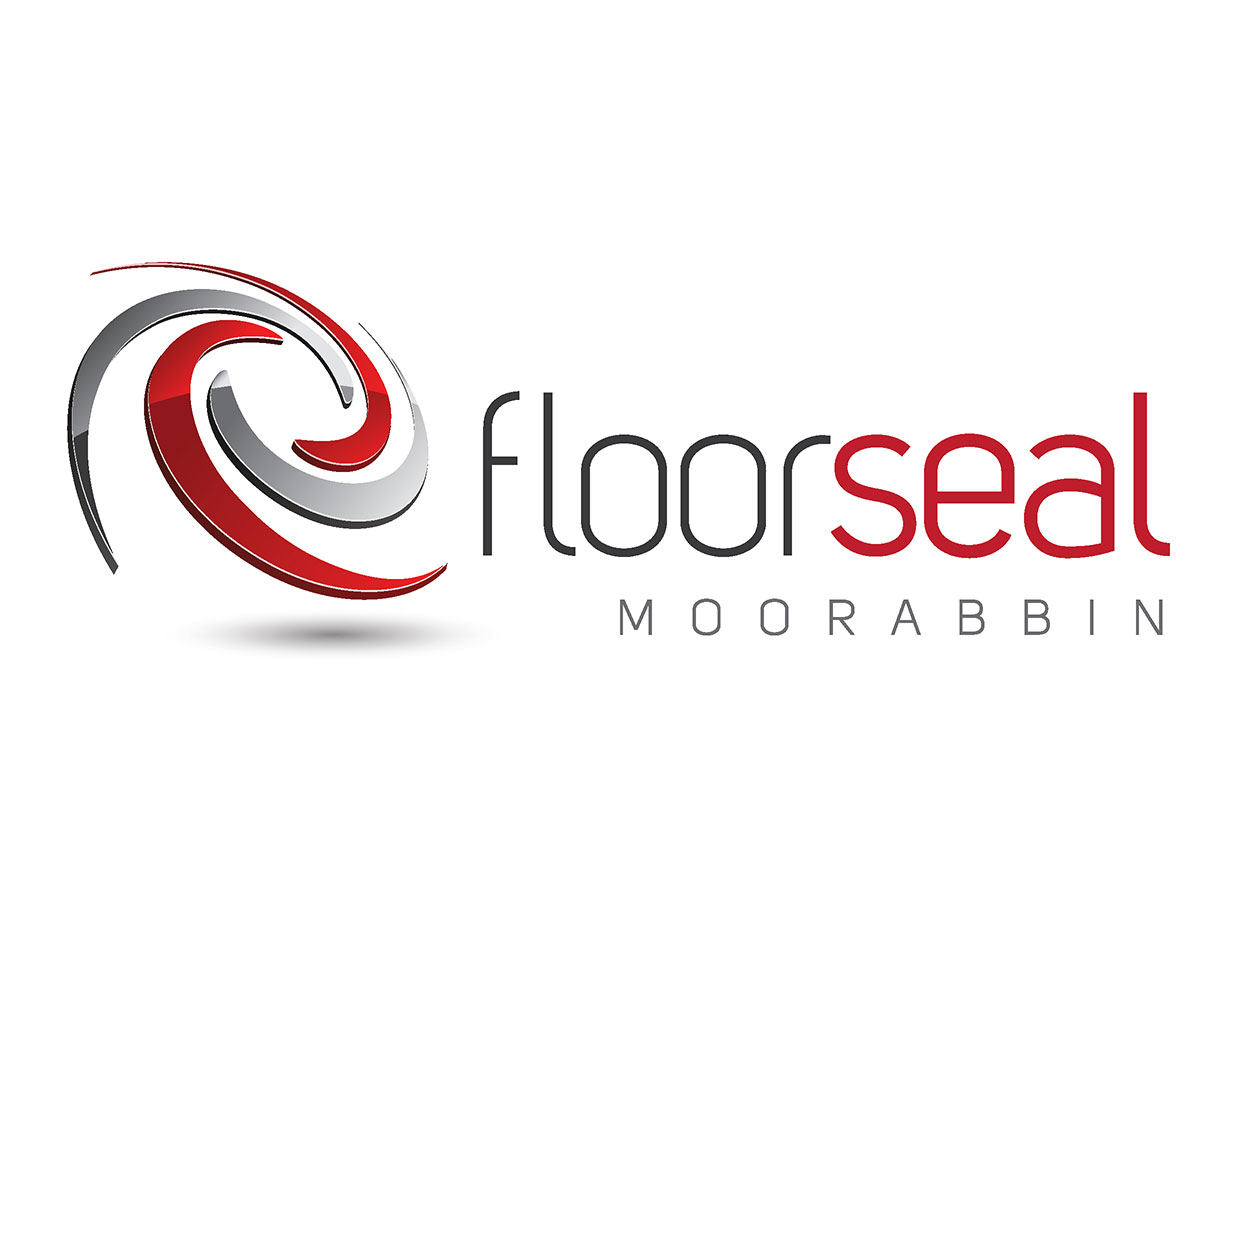 Floor-Seal-Moorabbin